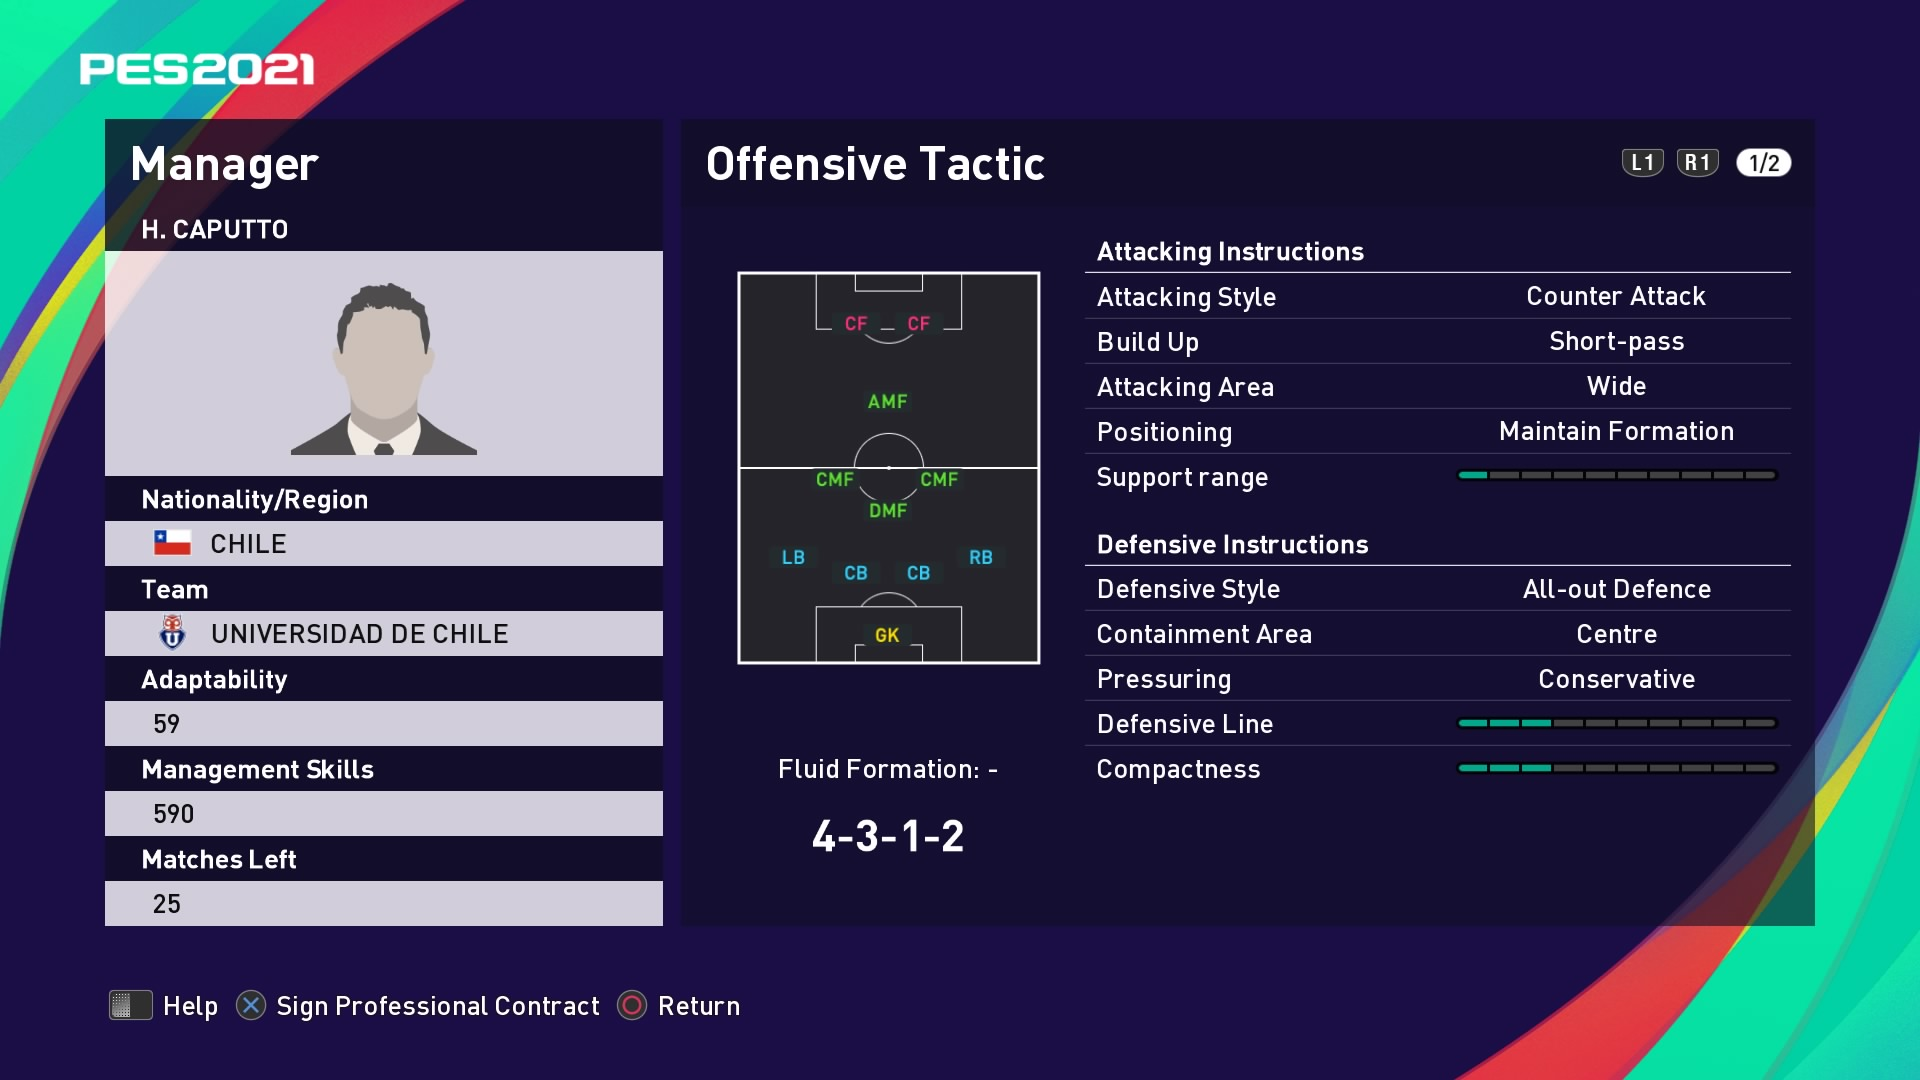 H. Caputto (Hernán Caputto) Offensive Tactic in PES 2021 myClub